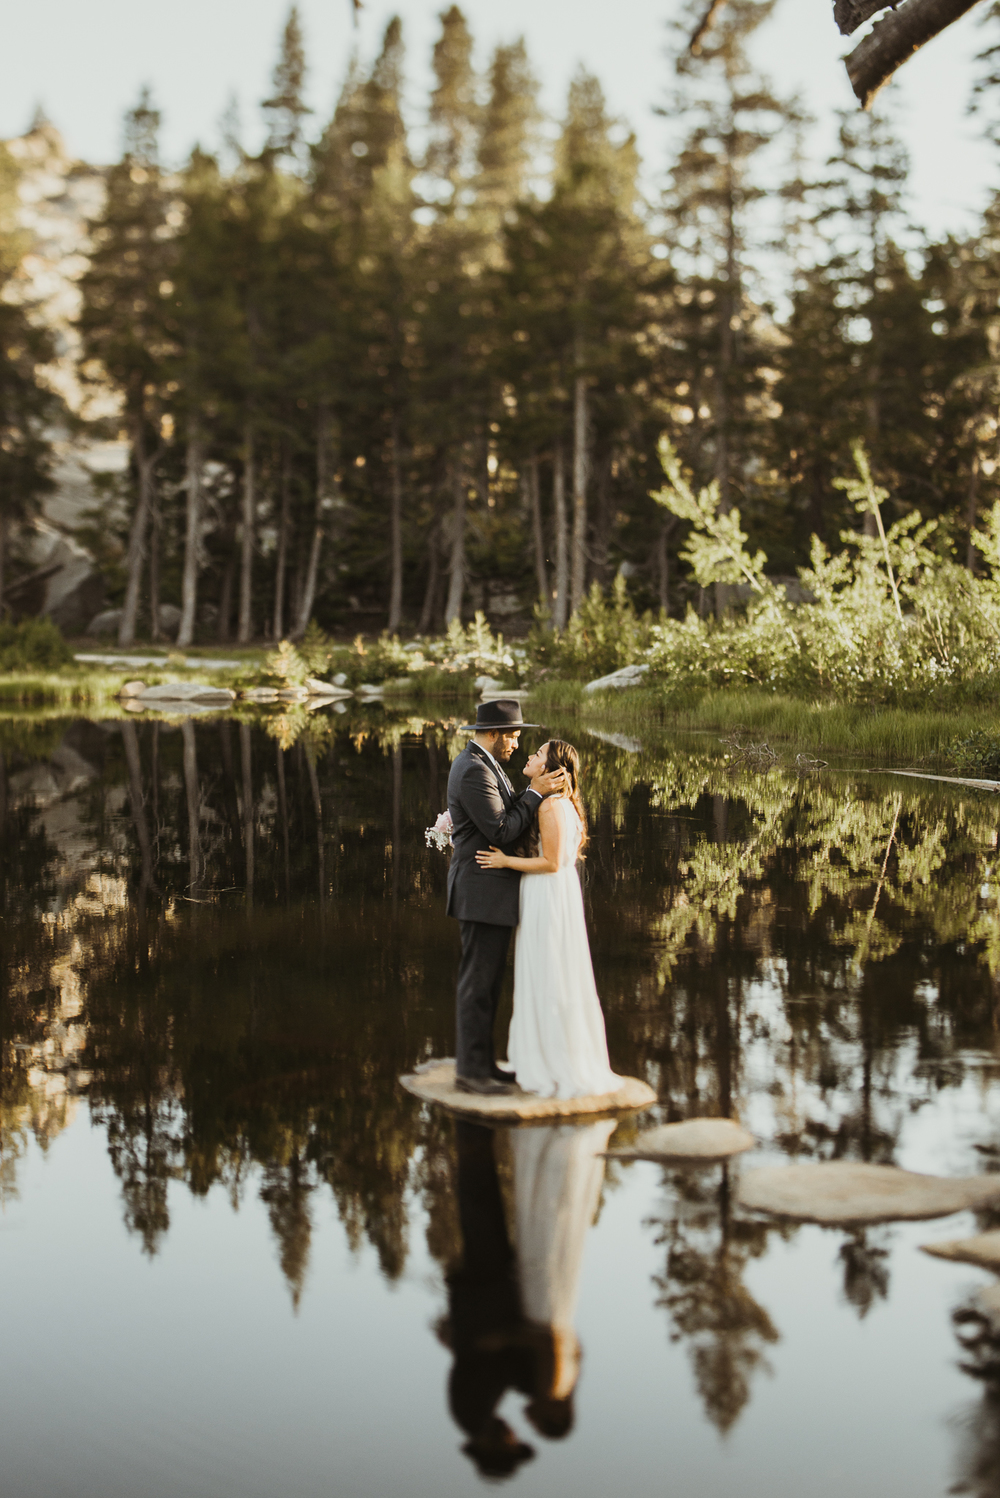 ©Isaiah & Taylor Photography -The Hideout Wedding, Kirkwood California, Lake Tahoe Wedding Photographer-173.jpg